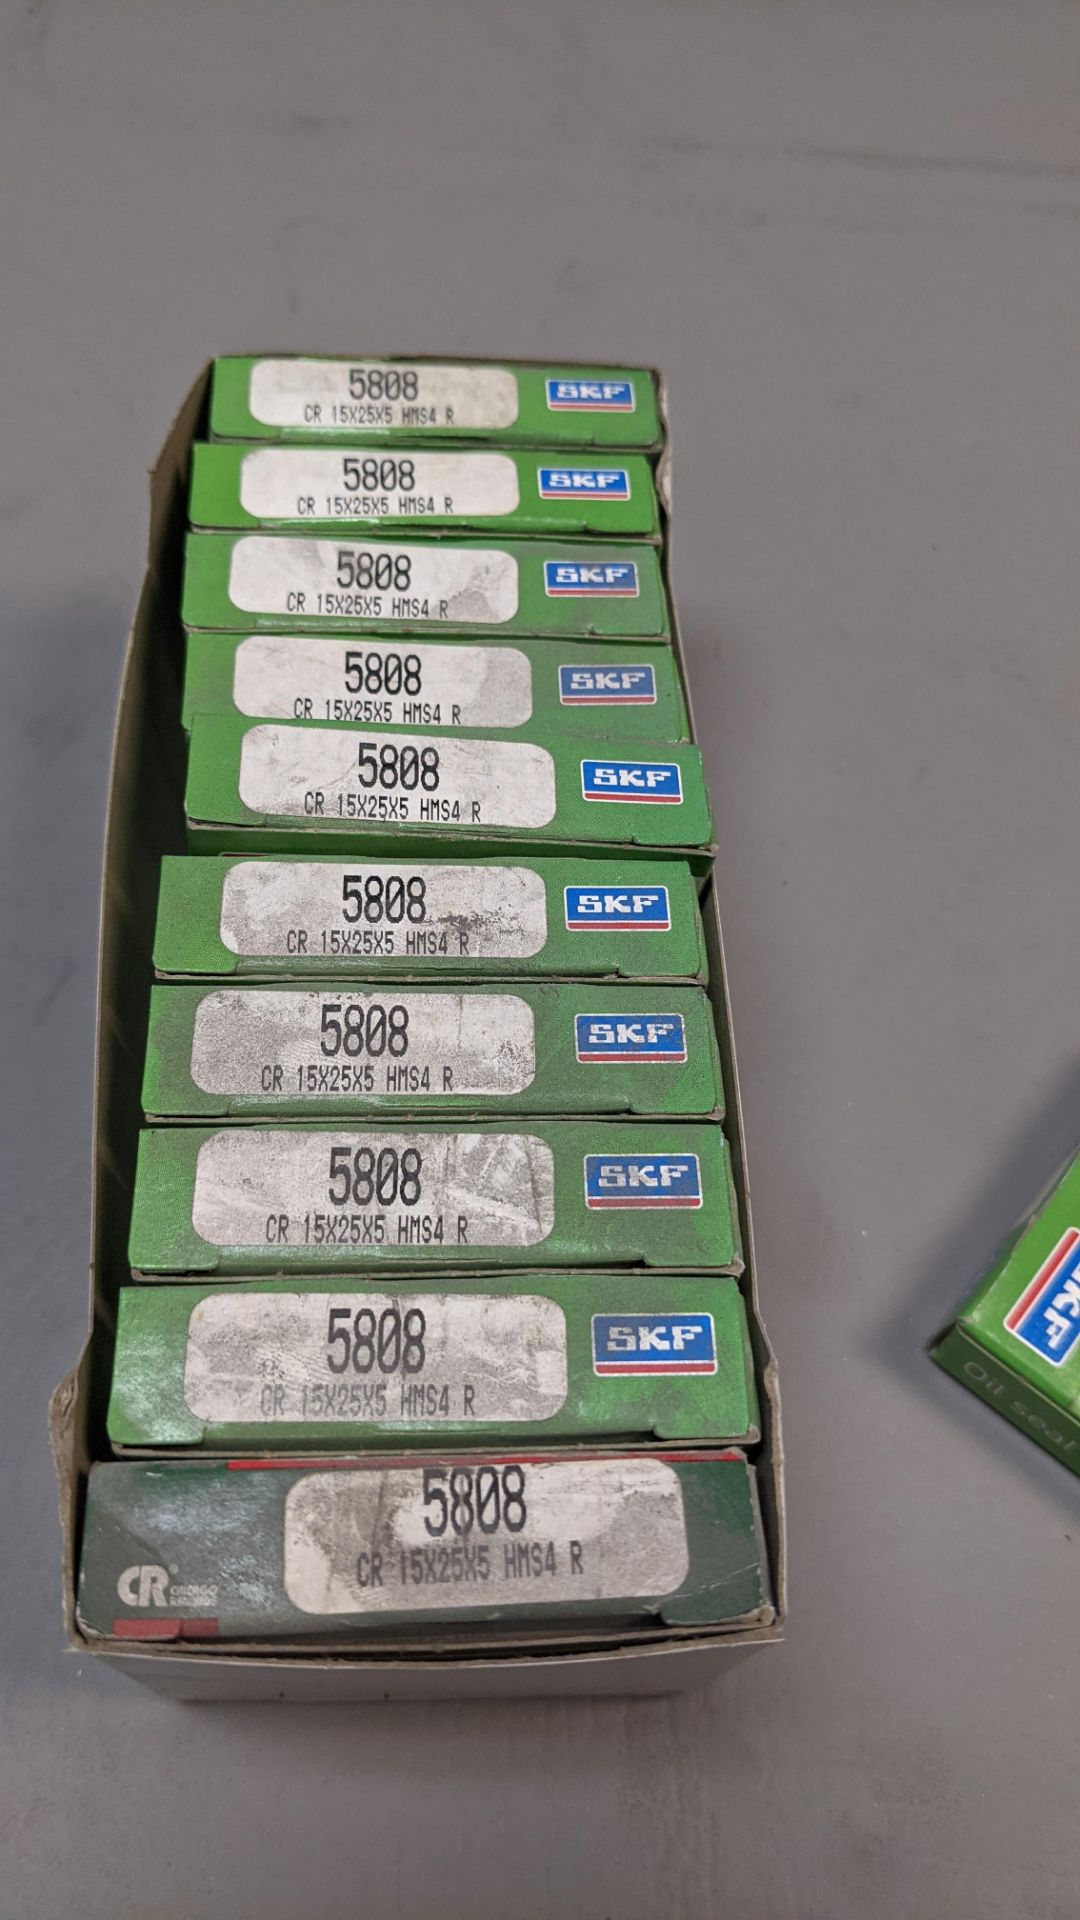 LOT OF NEW SKF OIL SEALS - Image 2 of 2